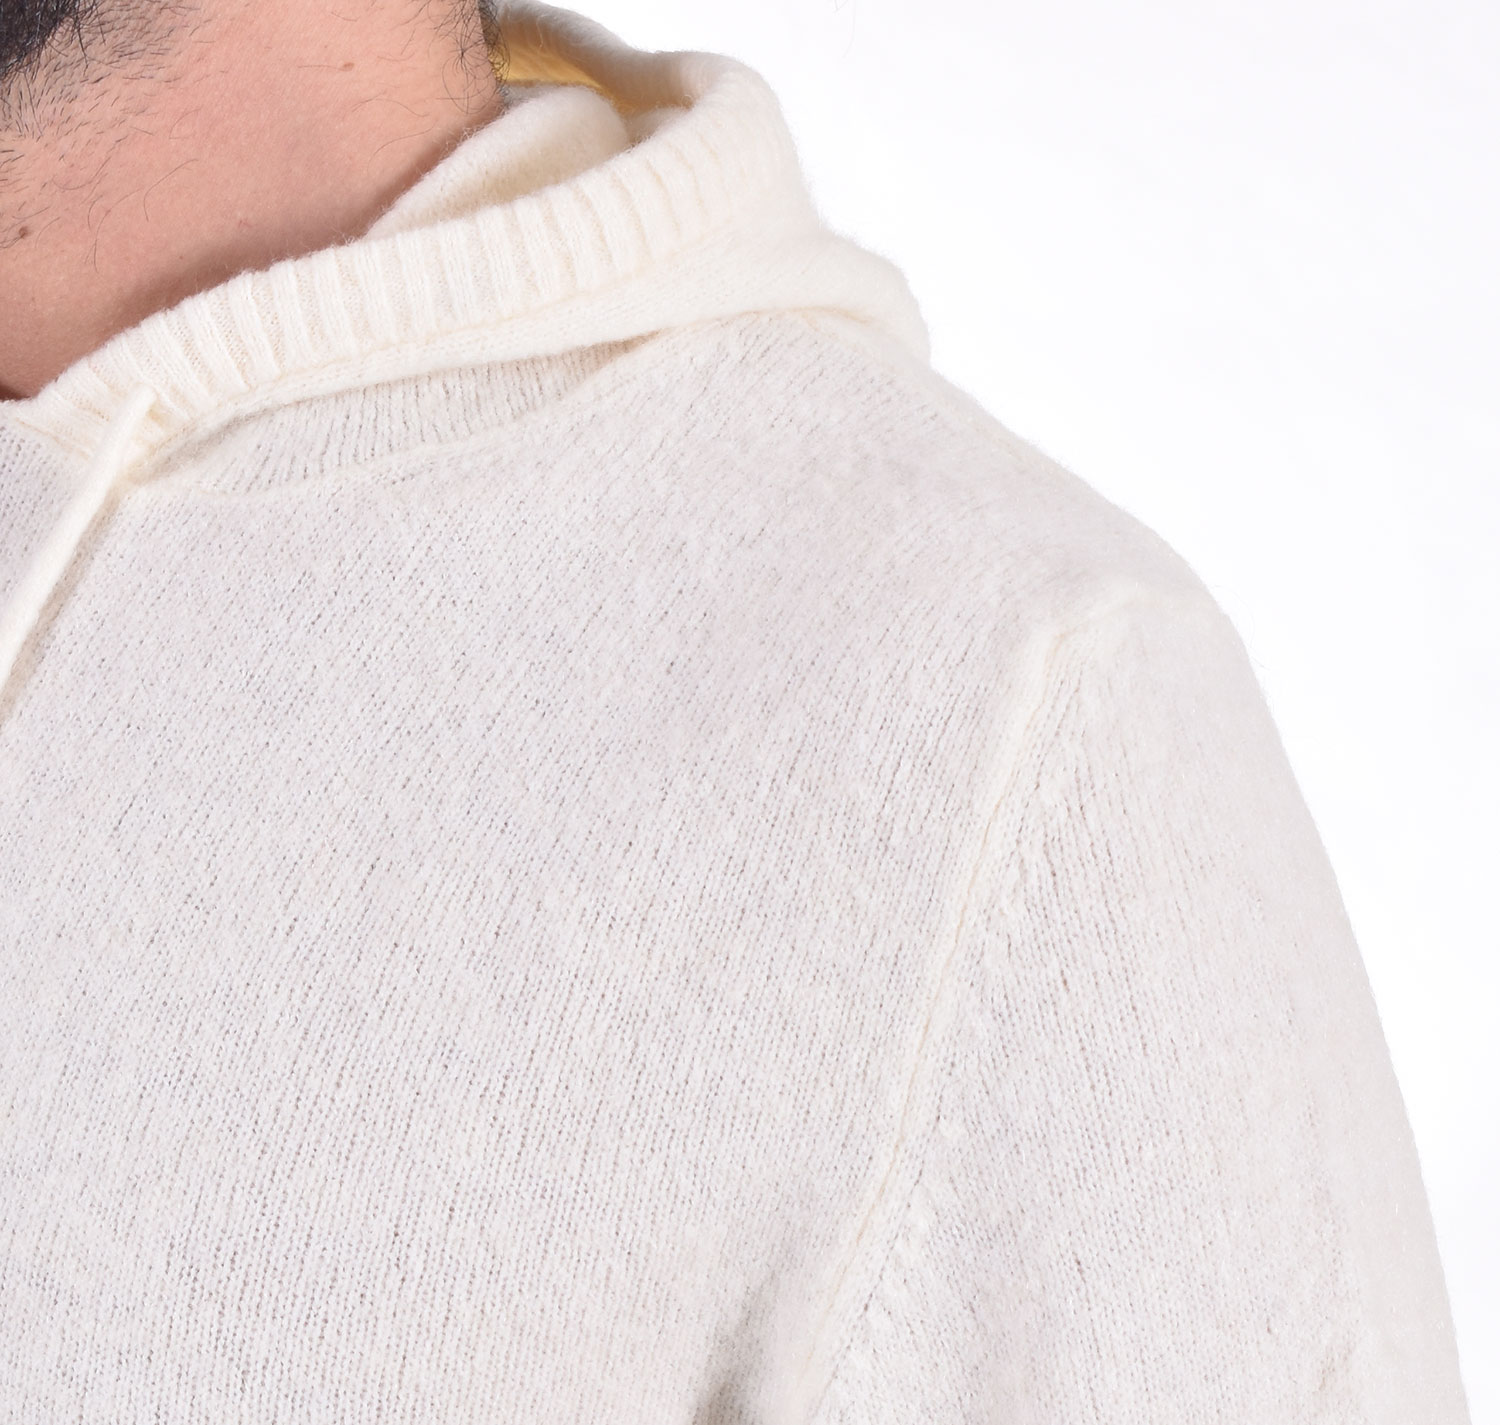 Officina 36 white hooded sweatshirt OFFICINA 36   CULM11301